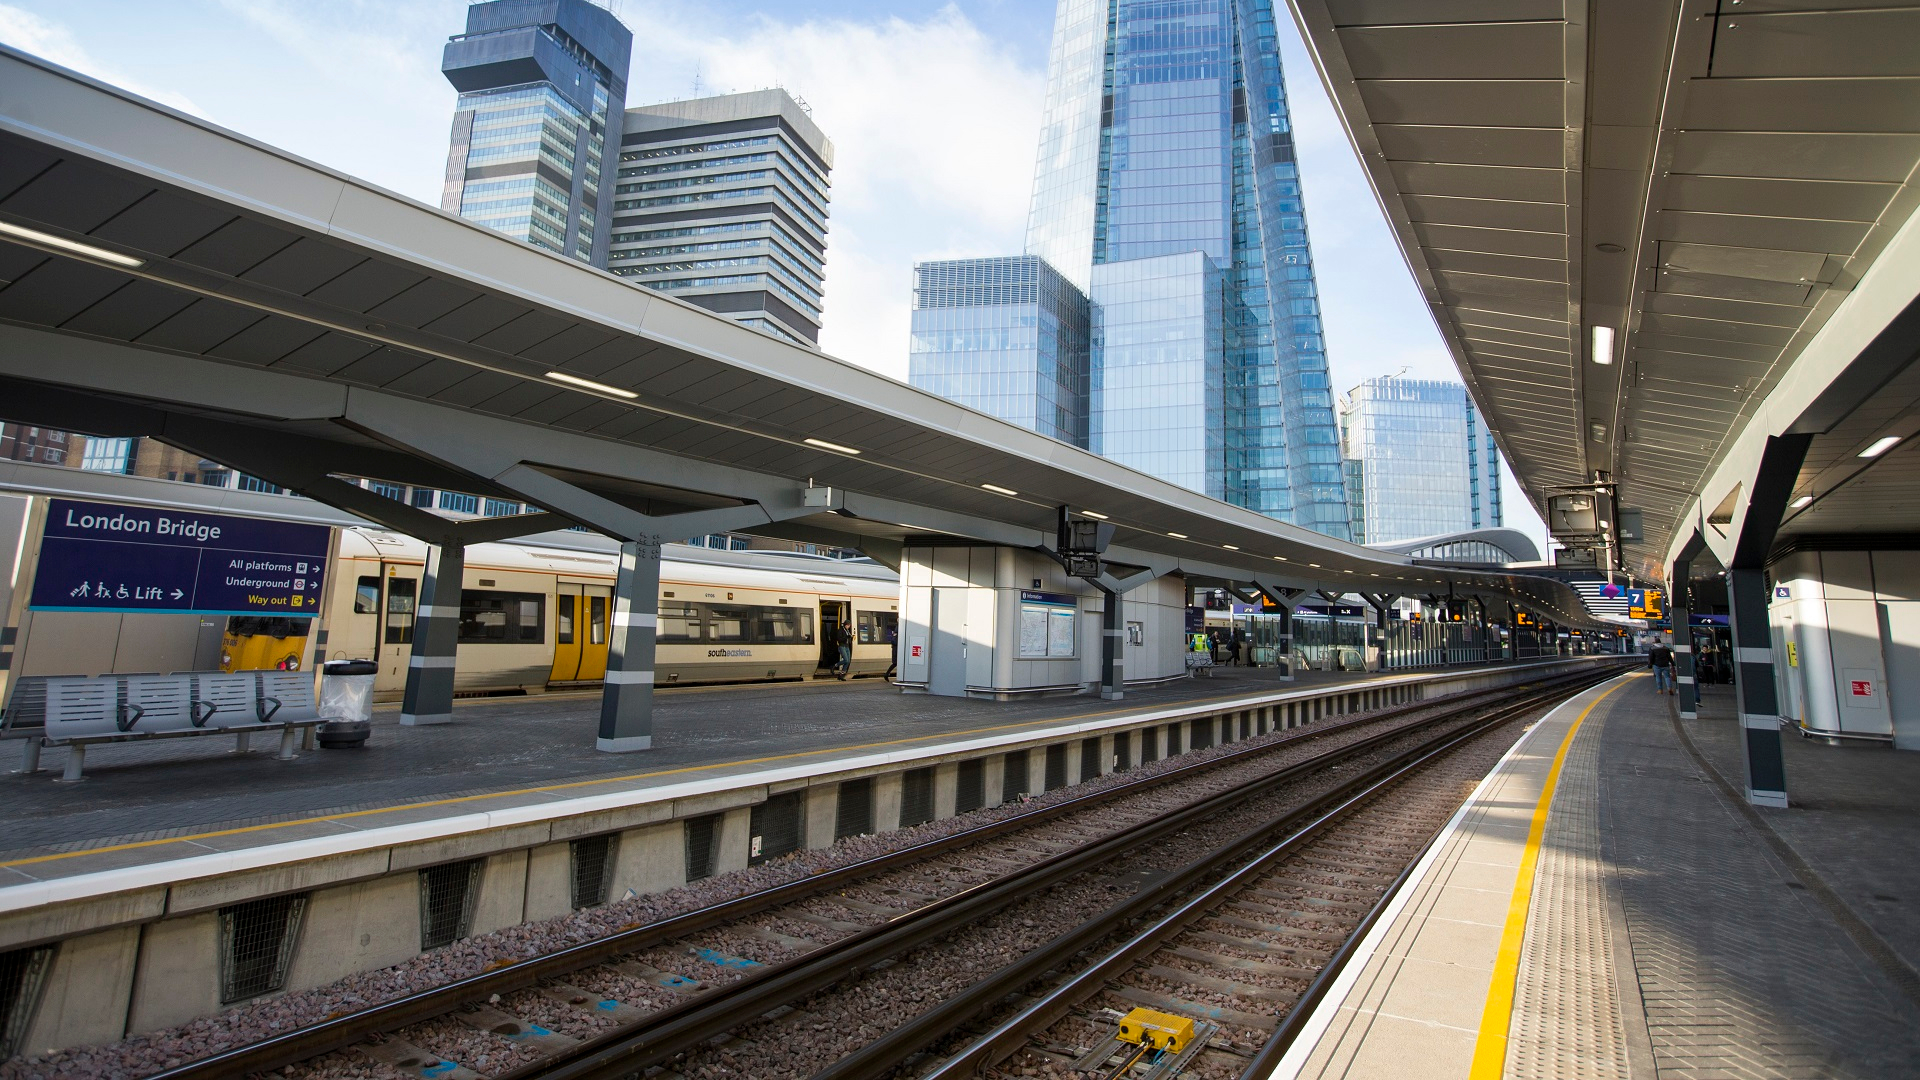 London Bridge station platform with train and tall buildings in the background.